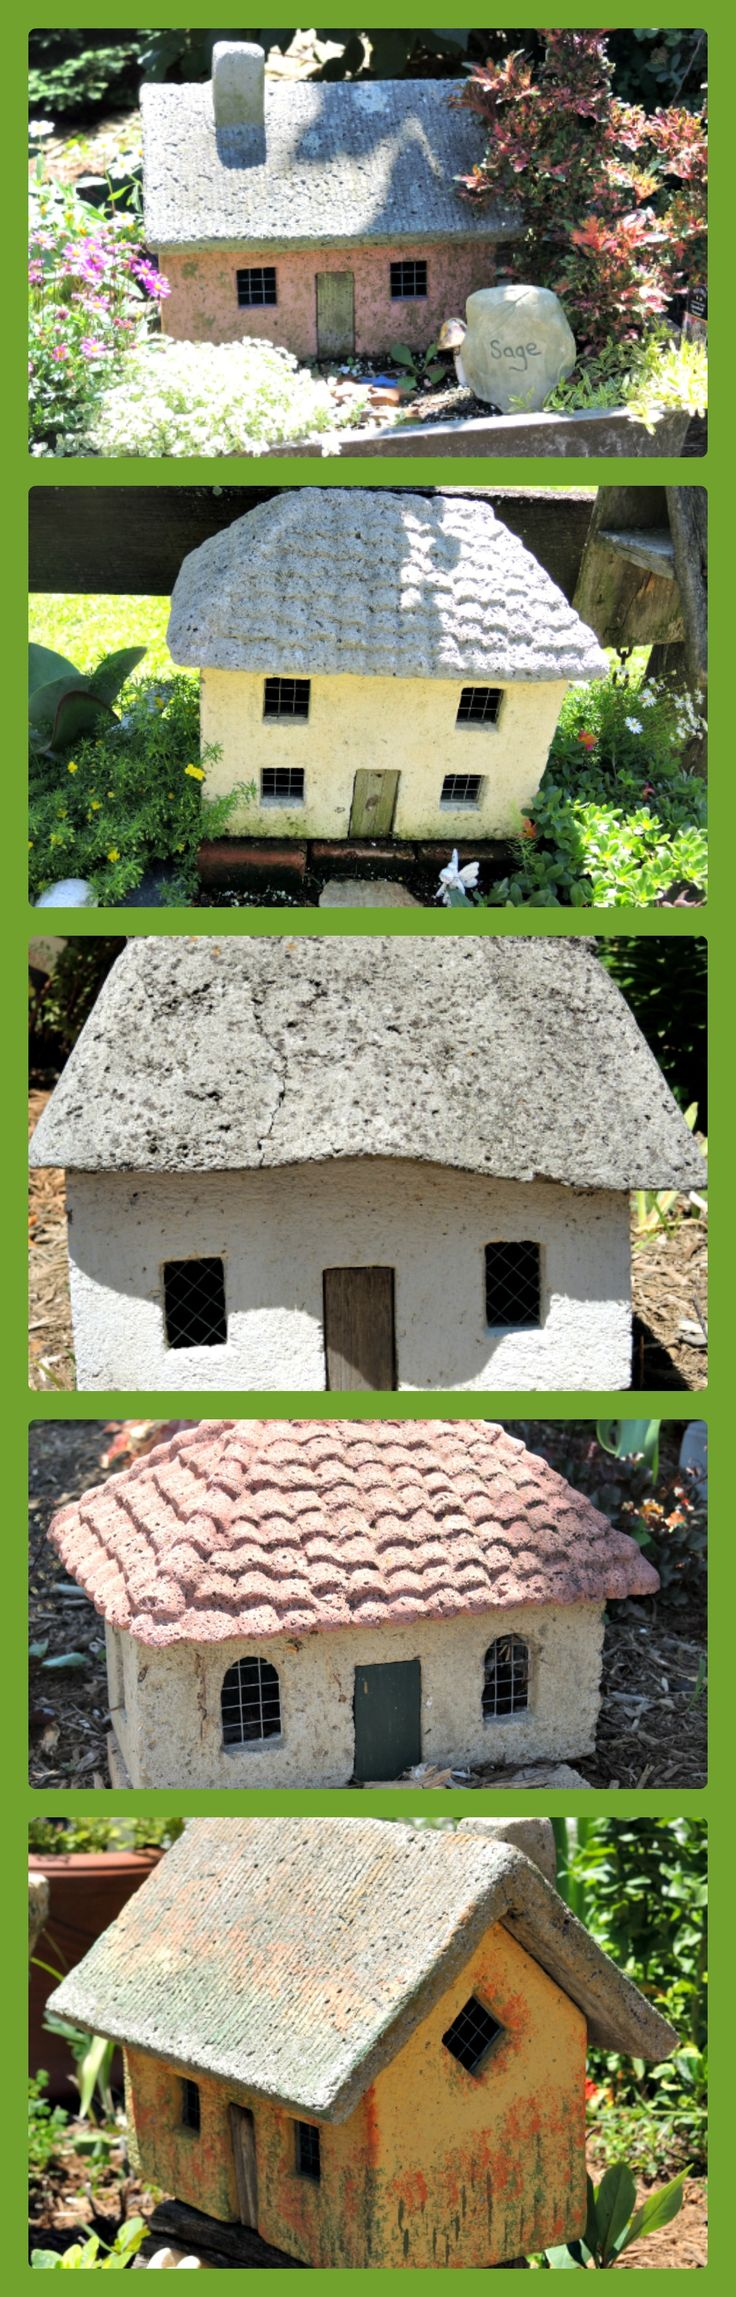 Hypertufa houses http://thegardendiaries.wordpress.com/2014/06/28/escape-to-surreybrooke-a-destination-garden-center/